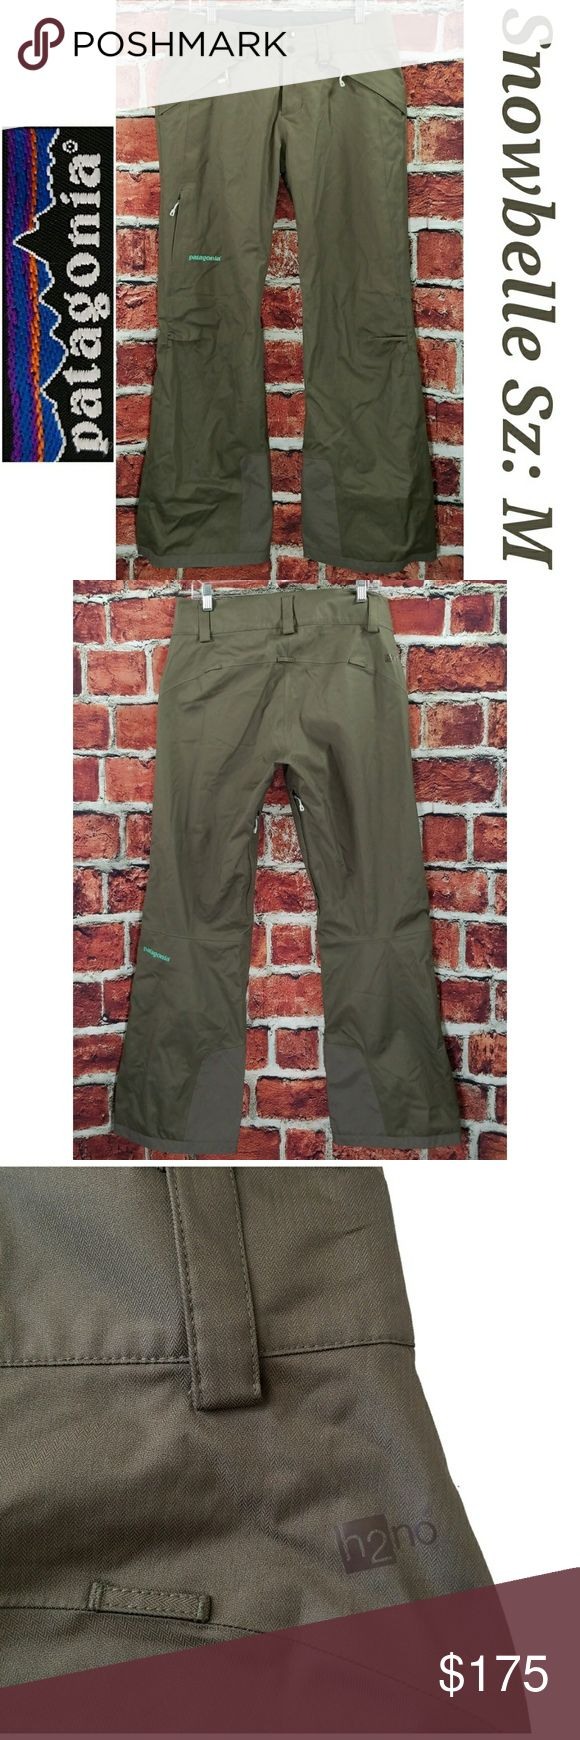 Mint condition! Women Patagonia Snowbelle Olive Green Insulated Ski Snow Pants Size: M Medium Patagonia Pants Boot Cut & Flare